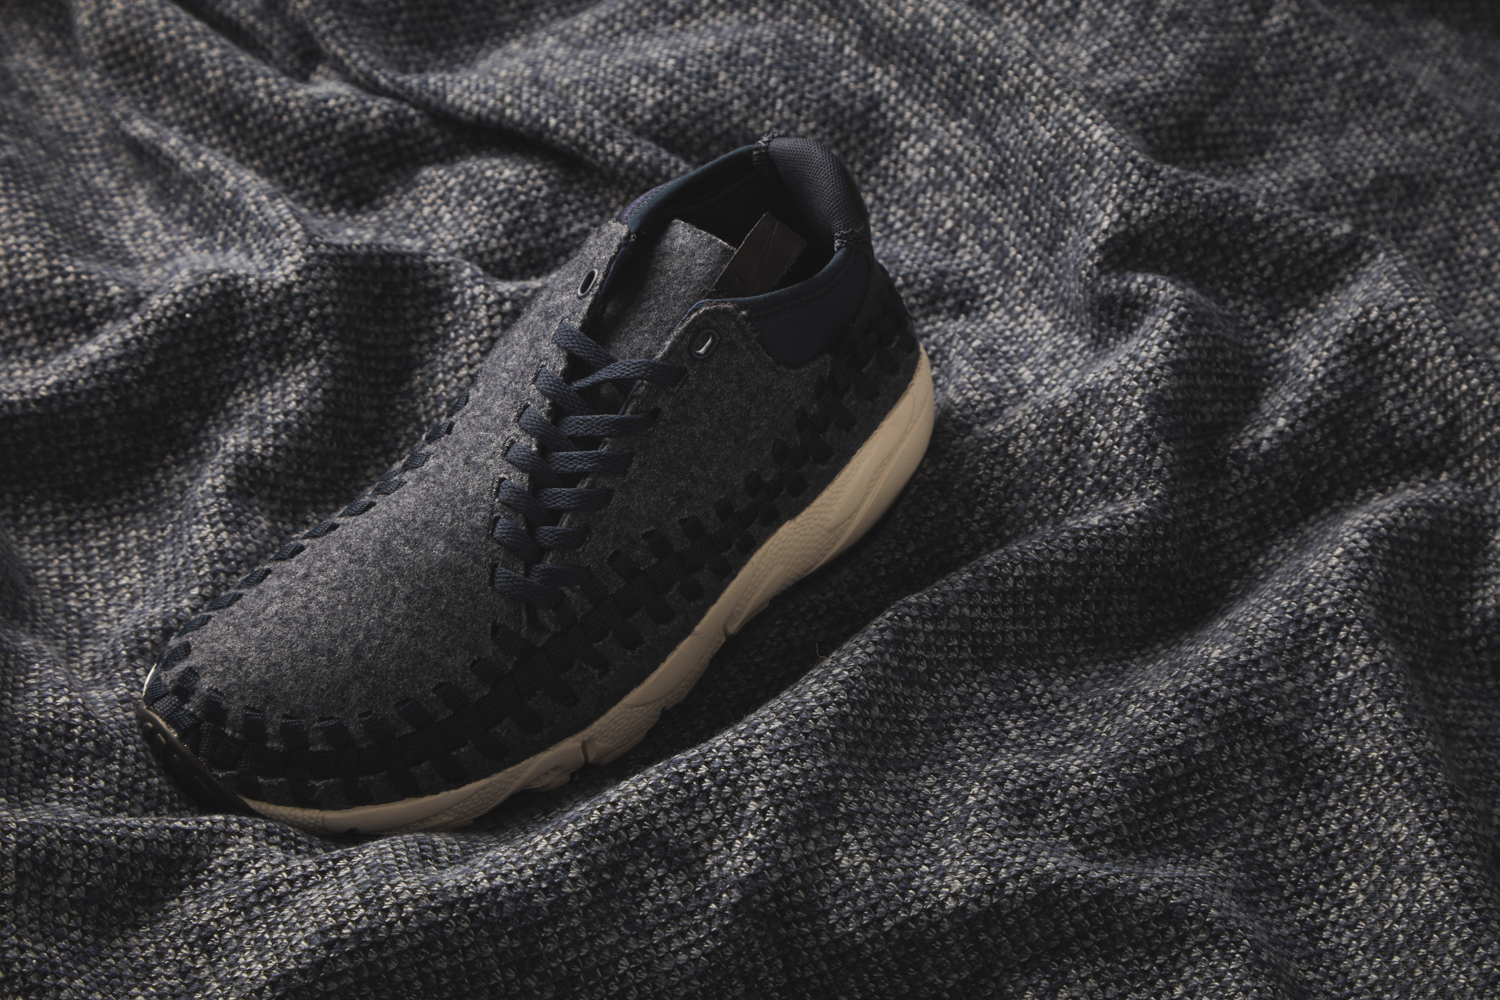 95fee1c9711e1 Nike Air Footscape Woven Chukka - size  blog